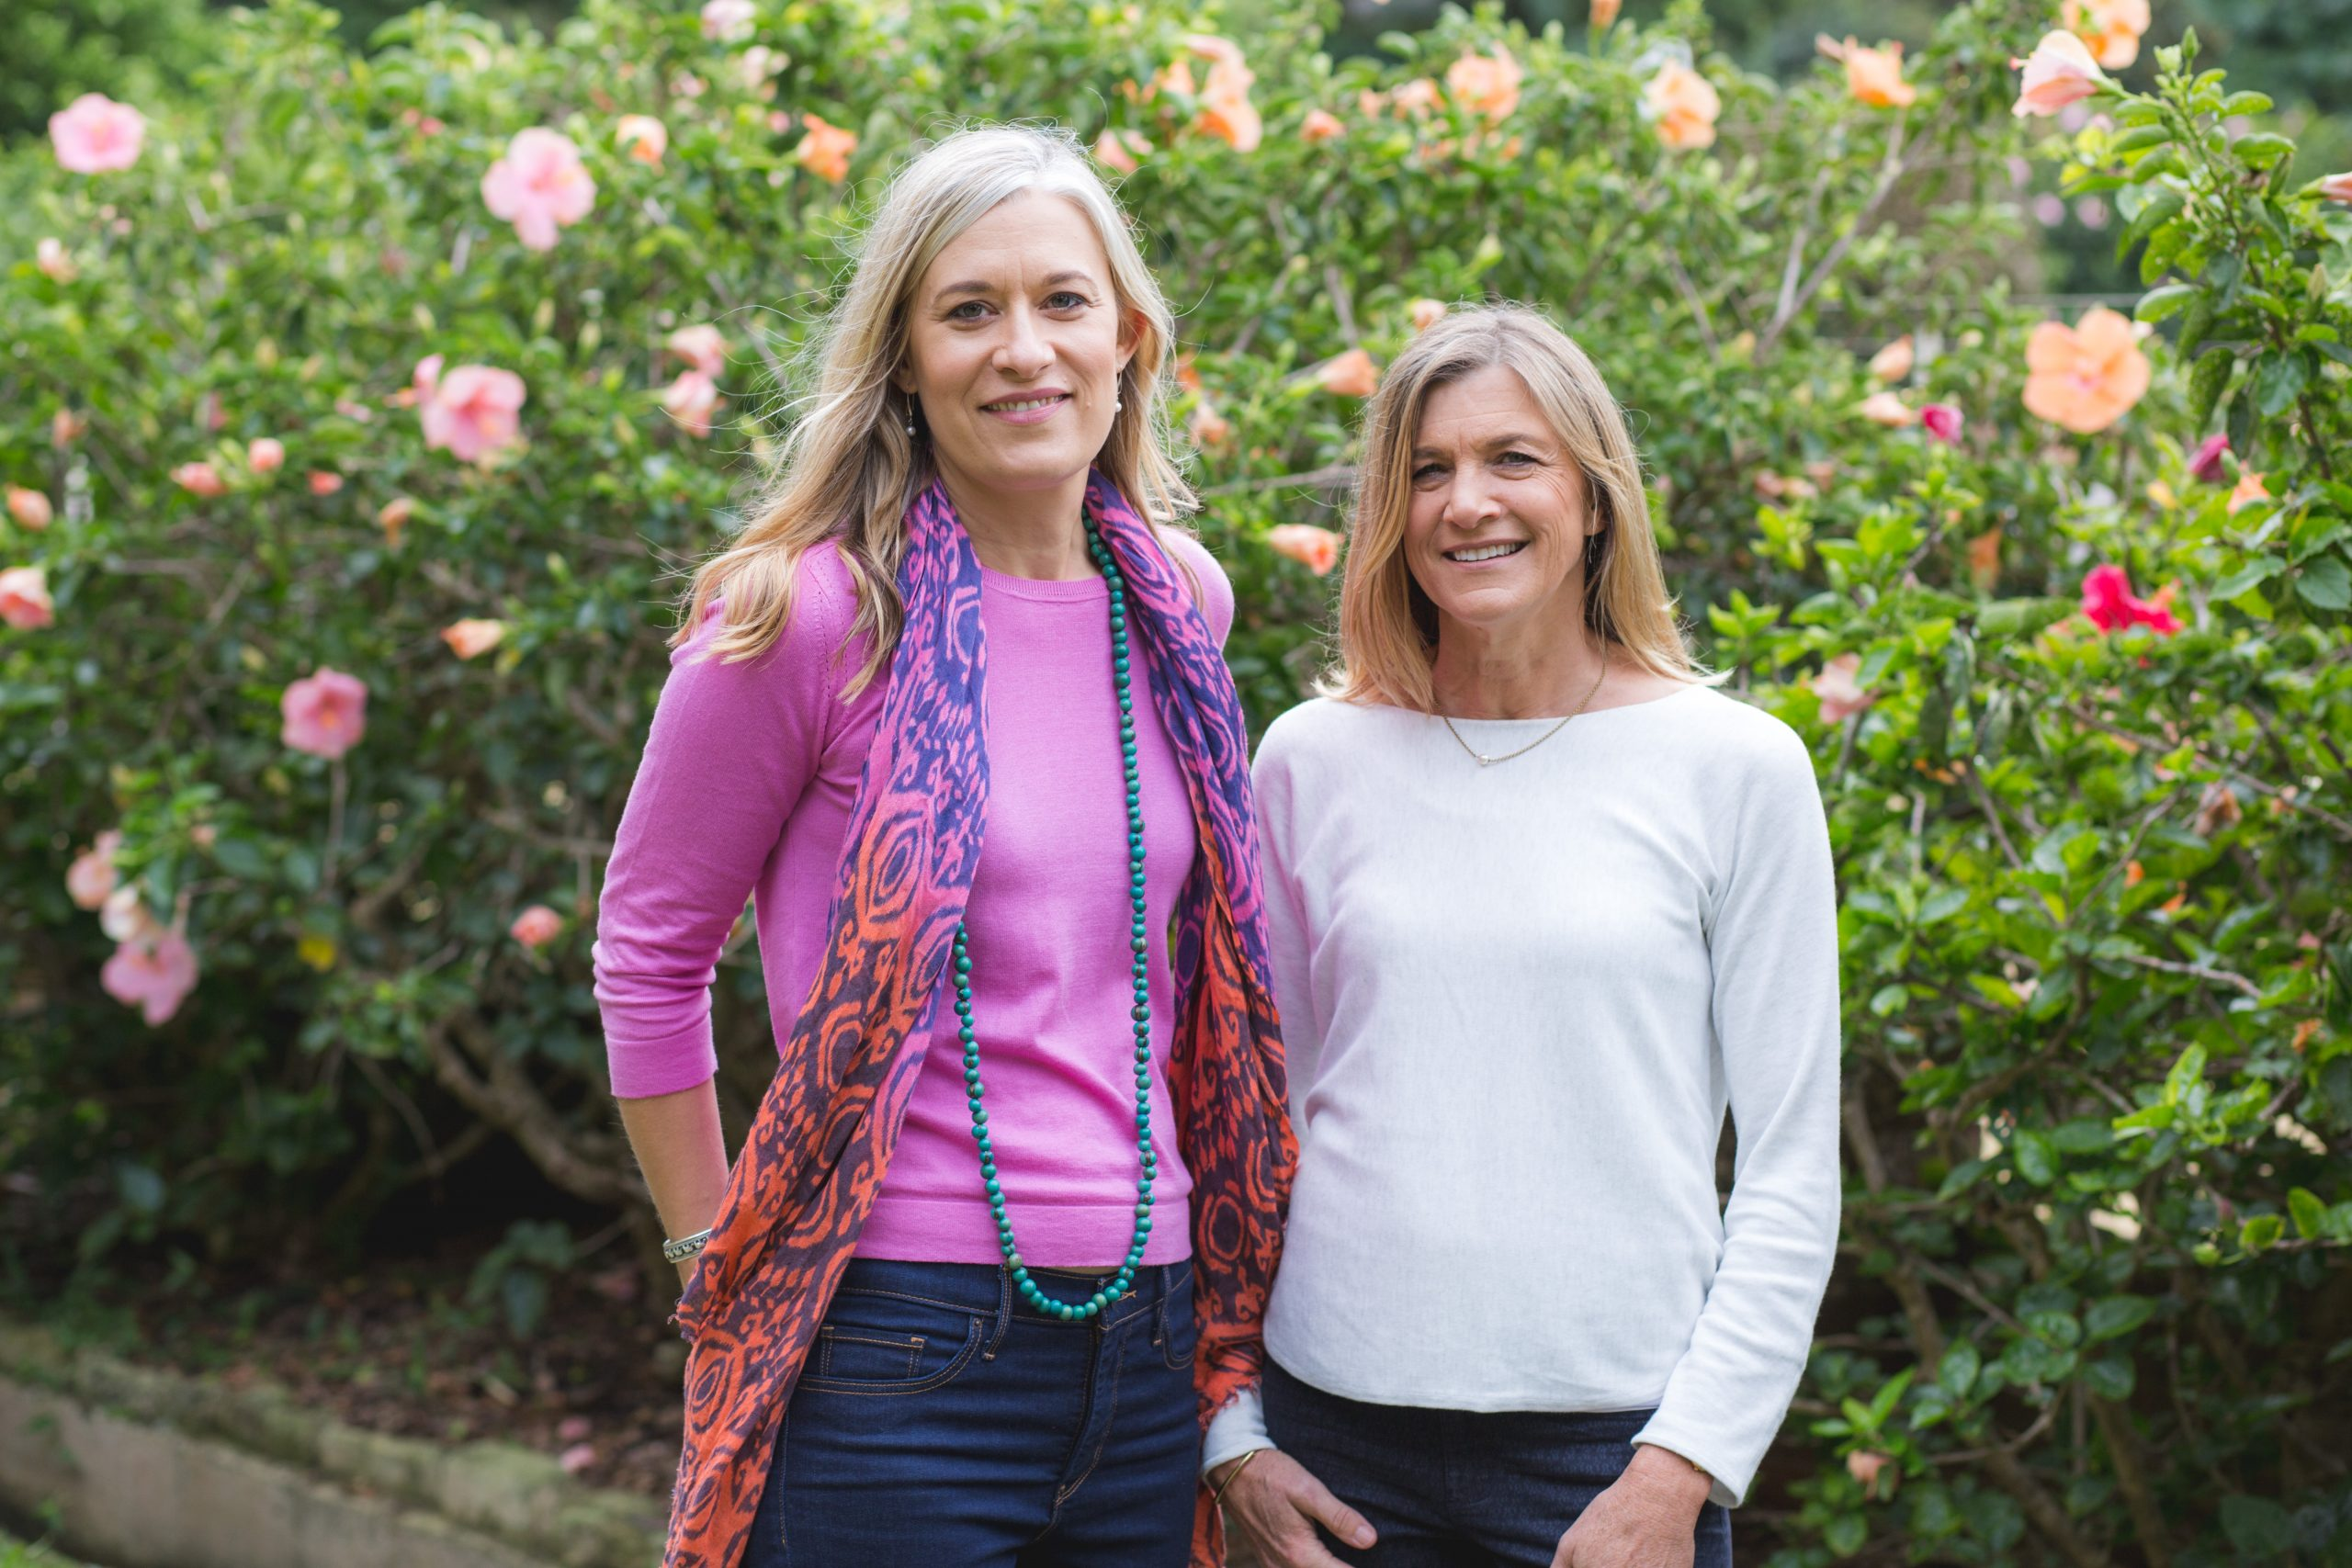 Northern Beaches Fertility and Health - Naturopathic Clinic in Sydney, Northern Beaches